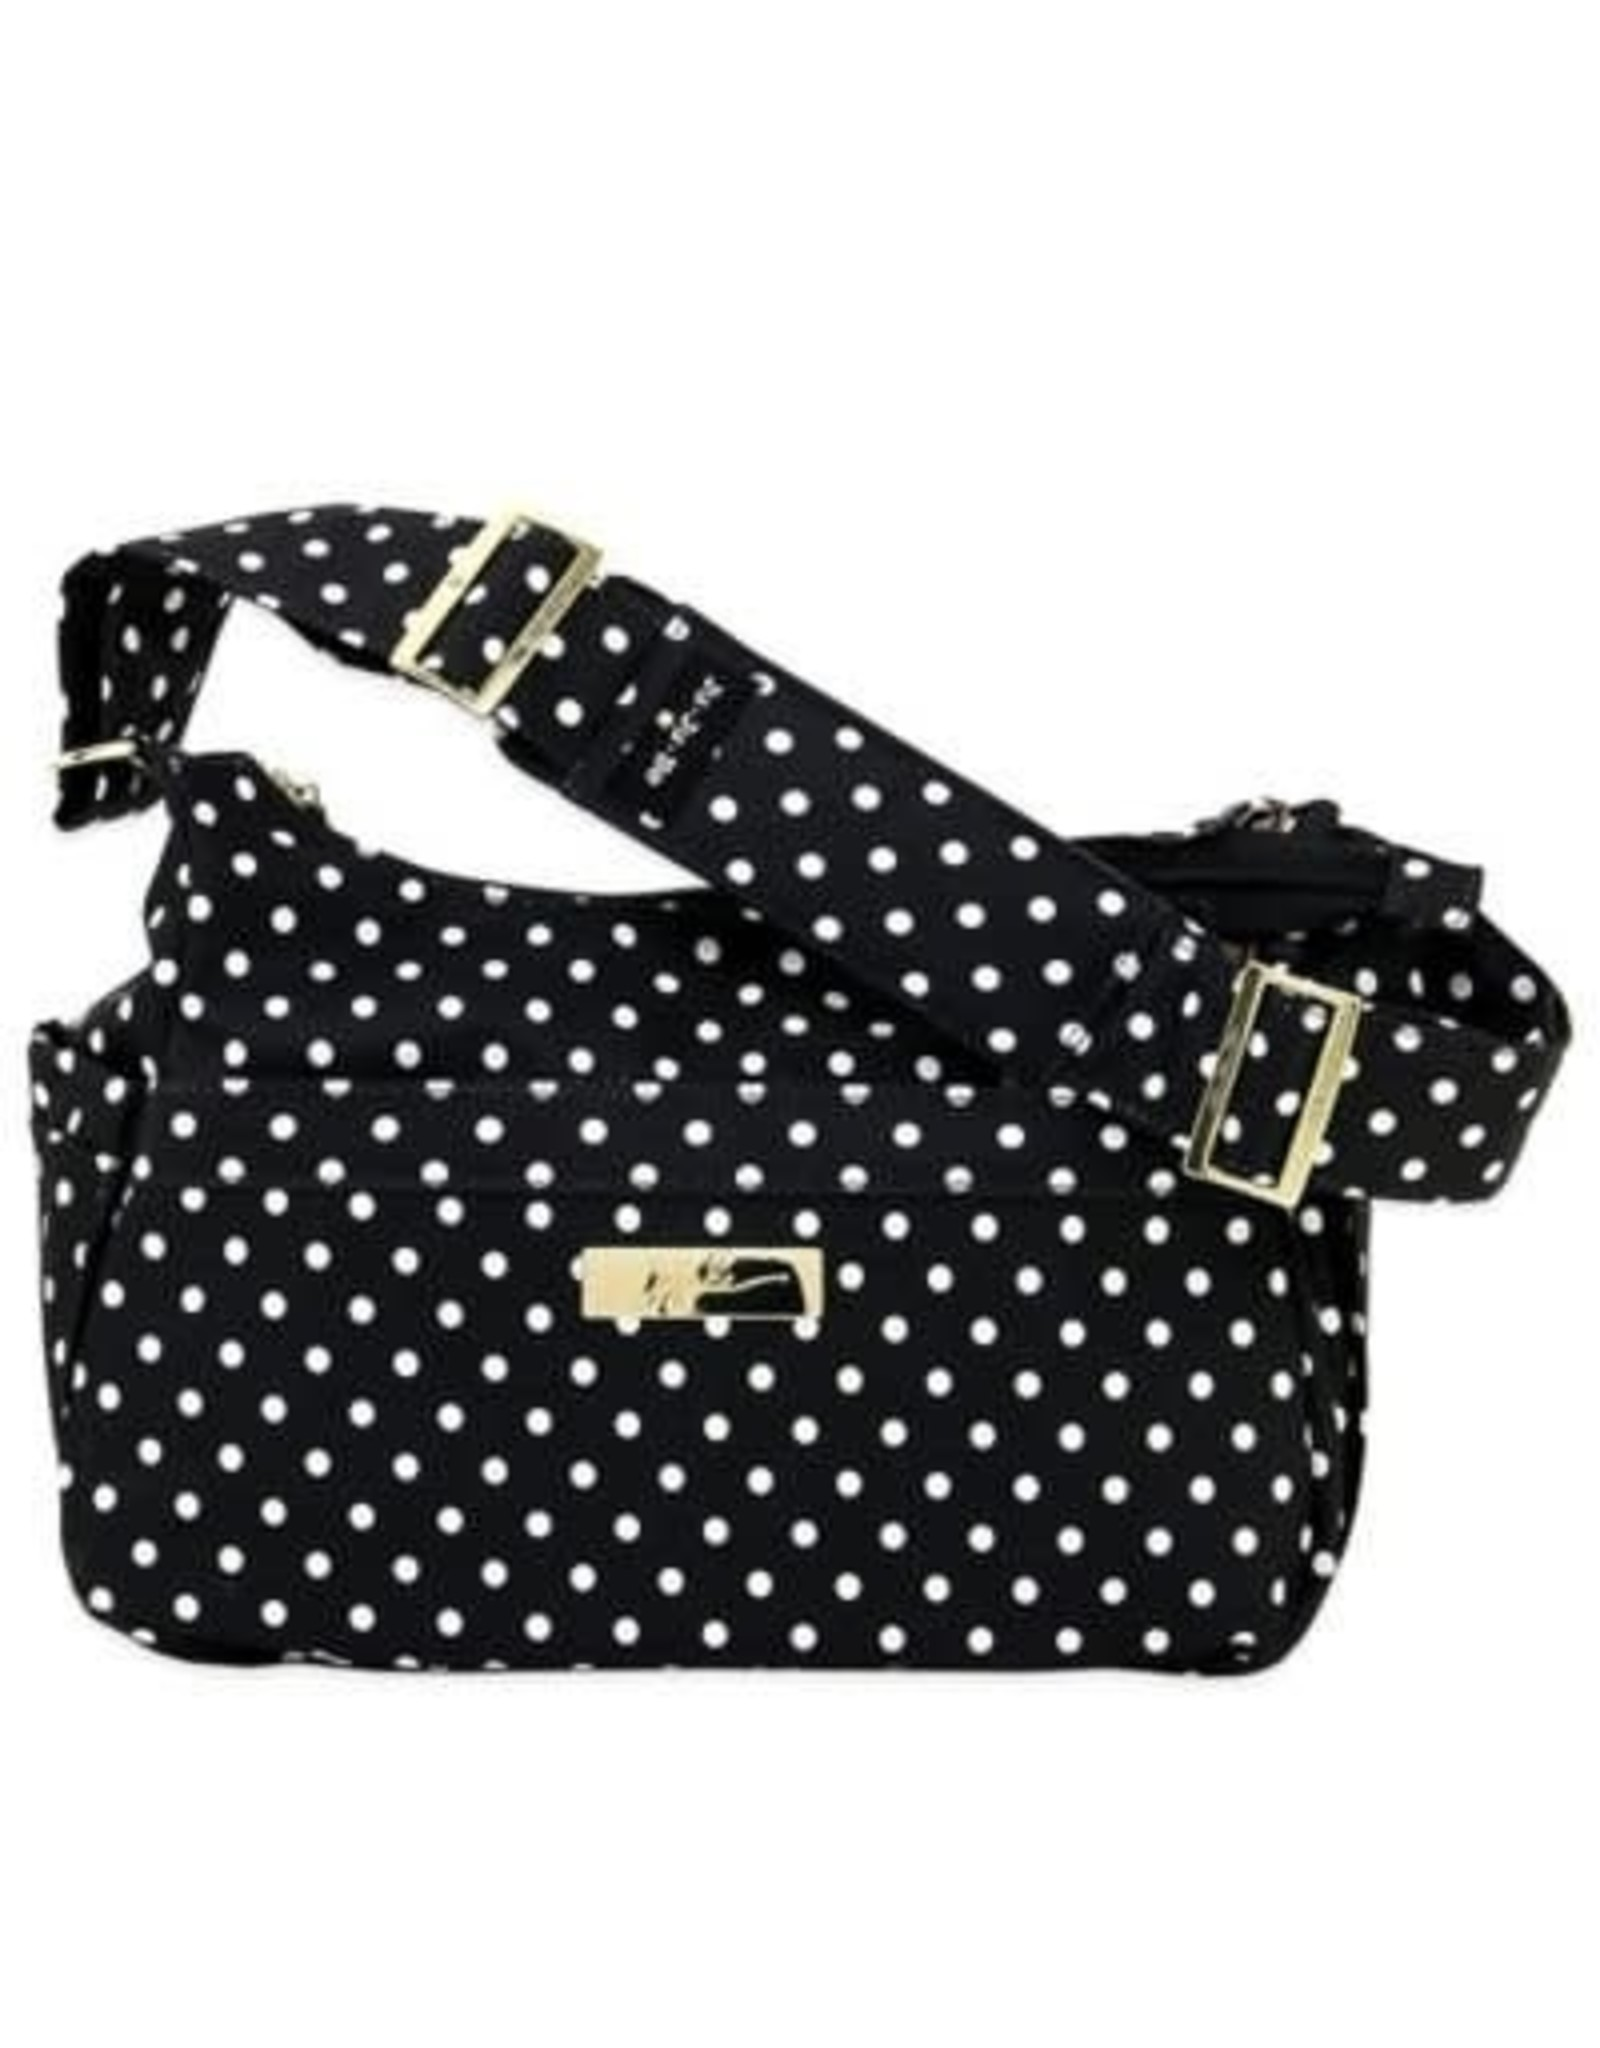 Jujube HoboBe Legacy Diaper Bag, The Duchess